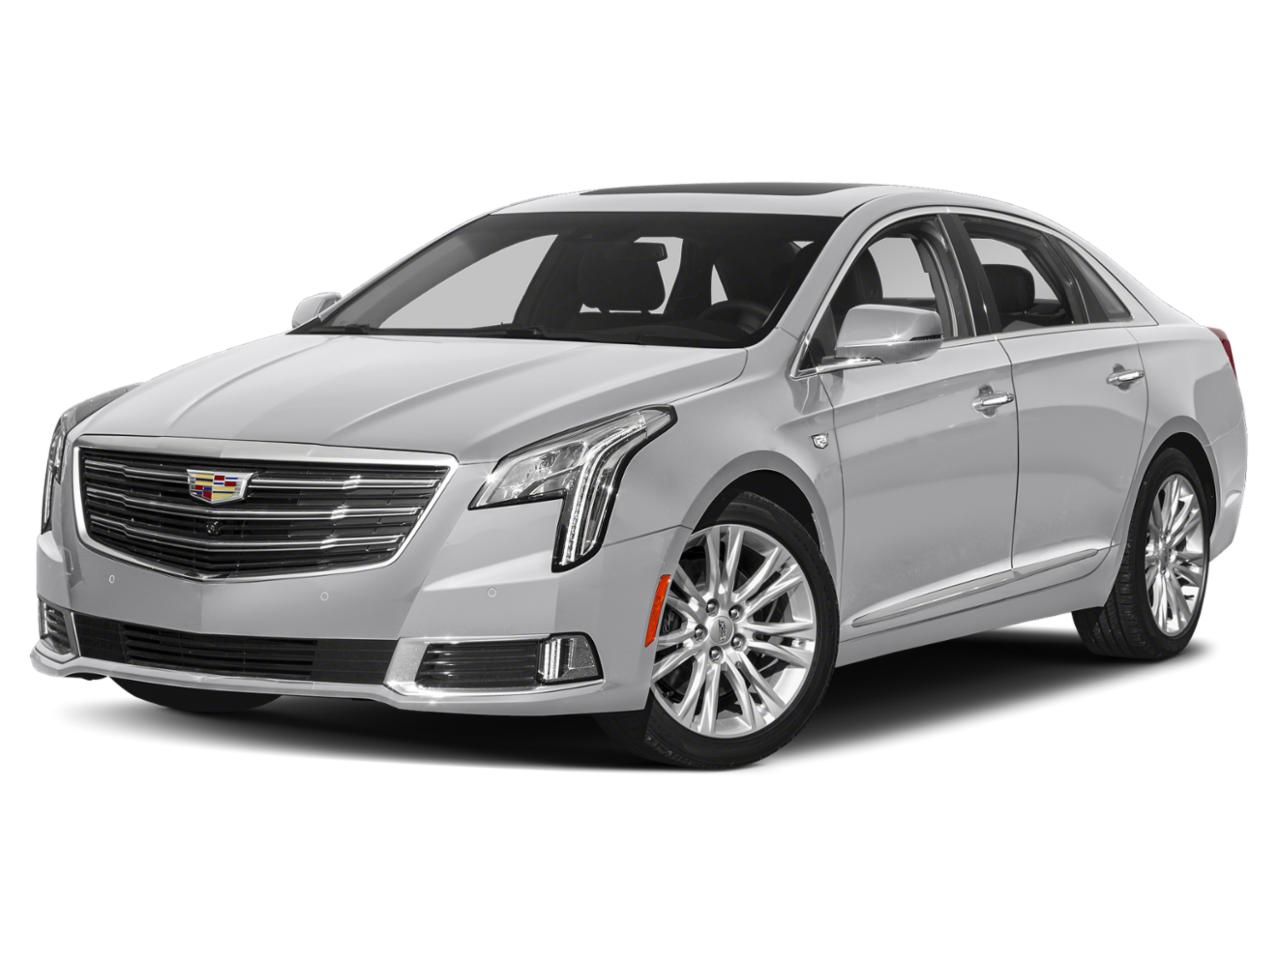 2019 Cadillac XTS Vehicle Photo in Tucson, AZ 85705